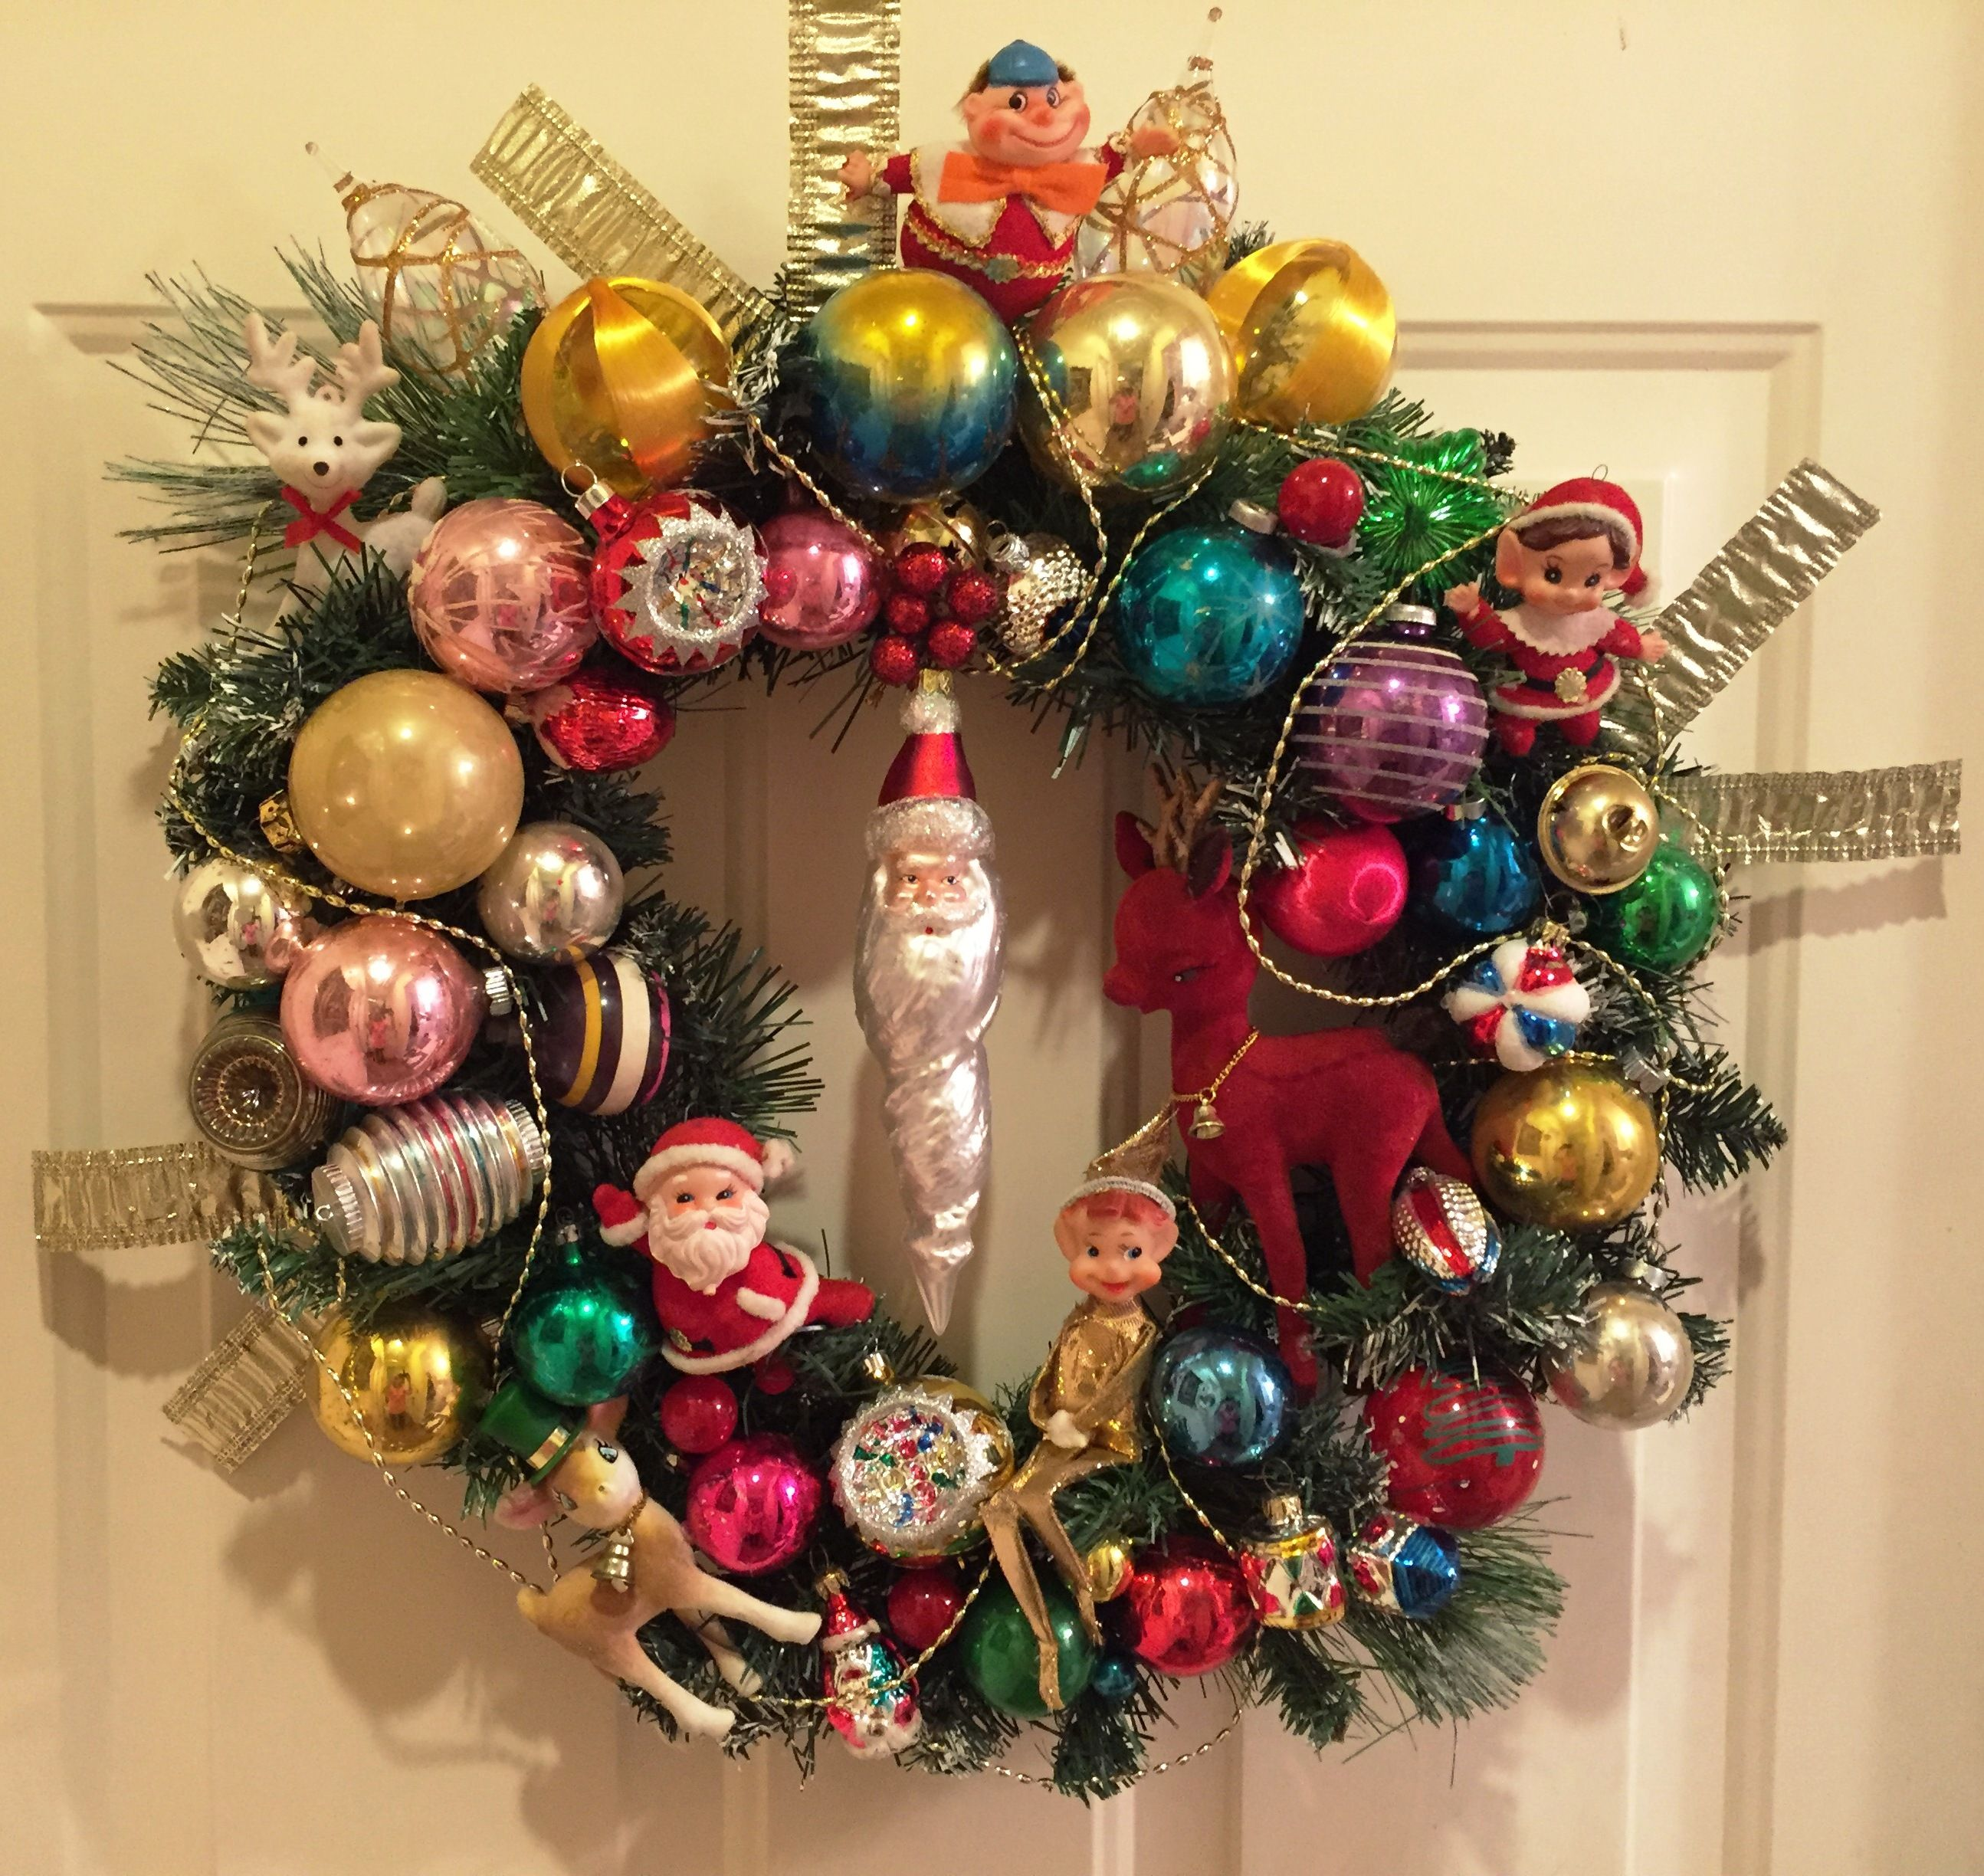 Handmade wreath using vintage ornaments from Poland, Germany,Austria,also Shiny Brite ornaments.